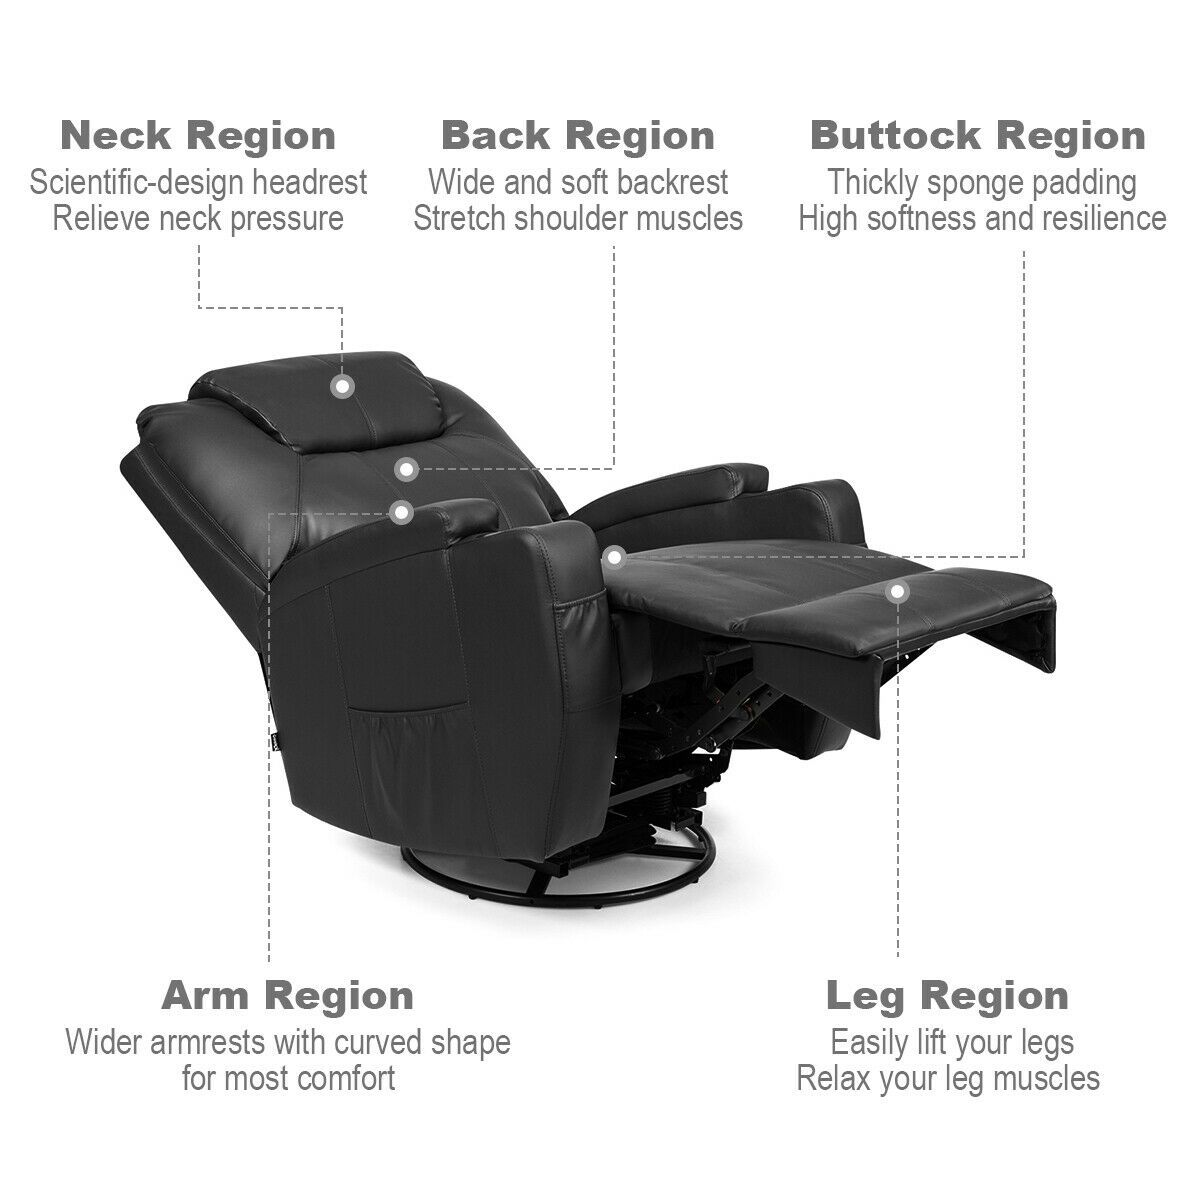 8 heated swivel point massage recliner chairblack in 2020